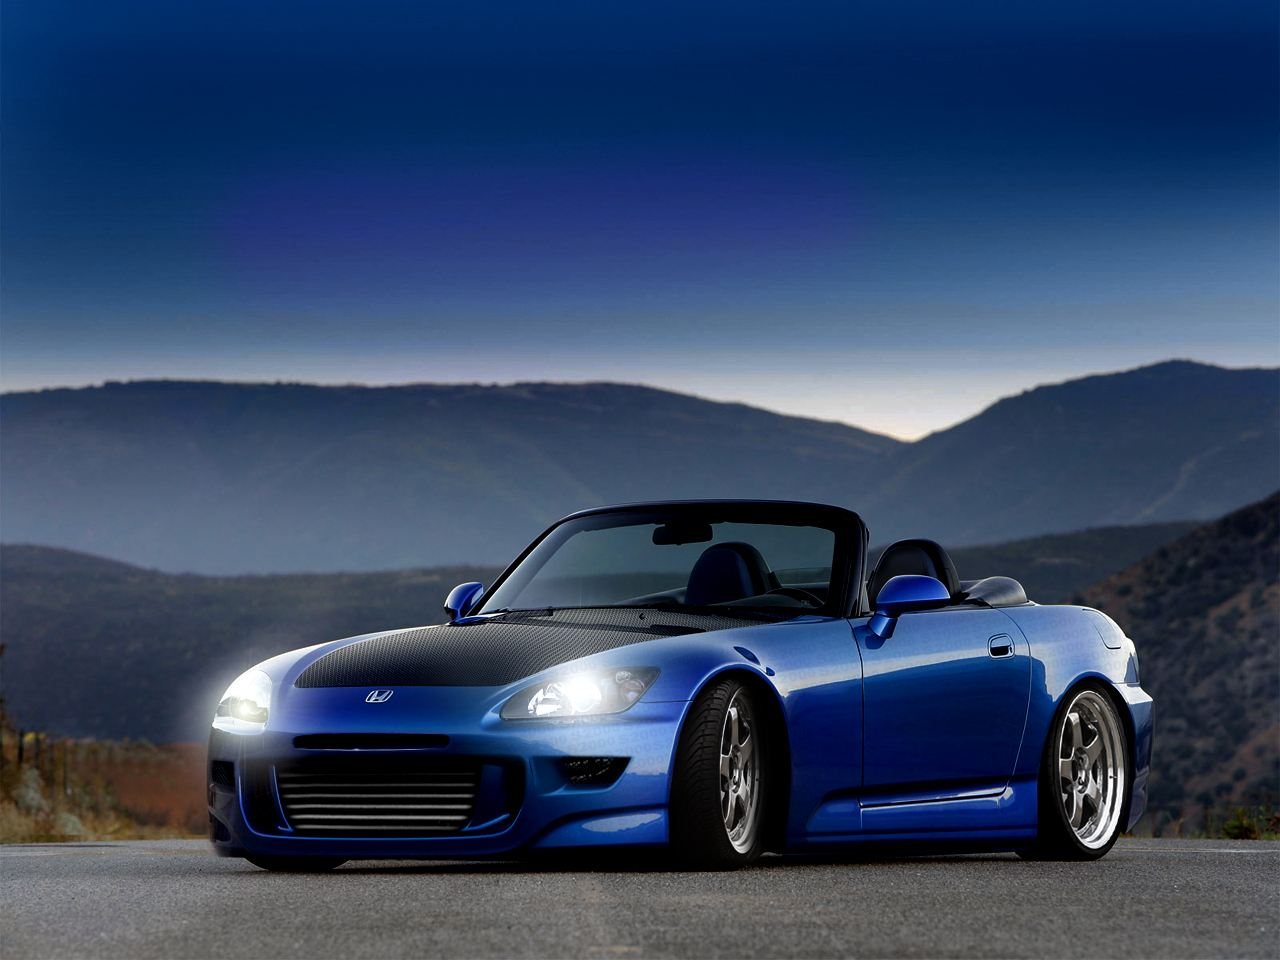 1280x960 - Honda S2000 Wallpapers 27